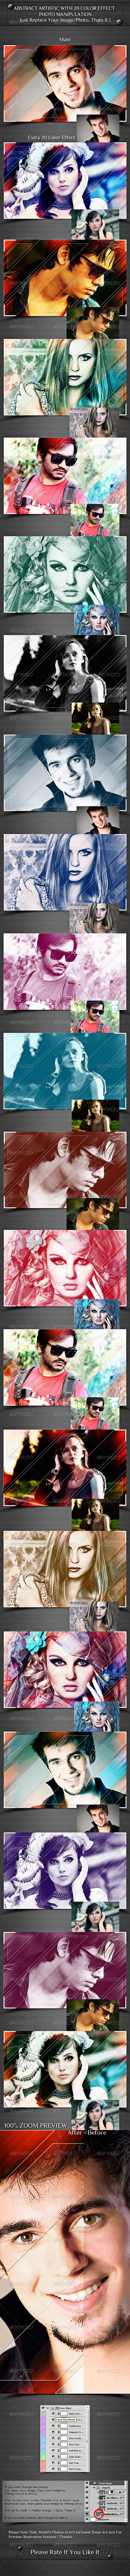 Abstract Artistic 20 Color  Photo Manipulation - Photo Templates Graphics